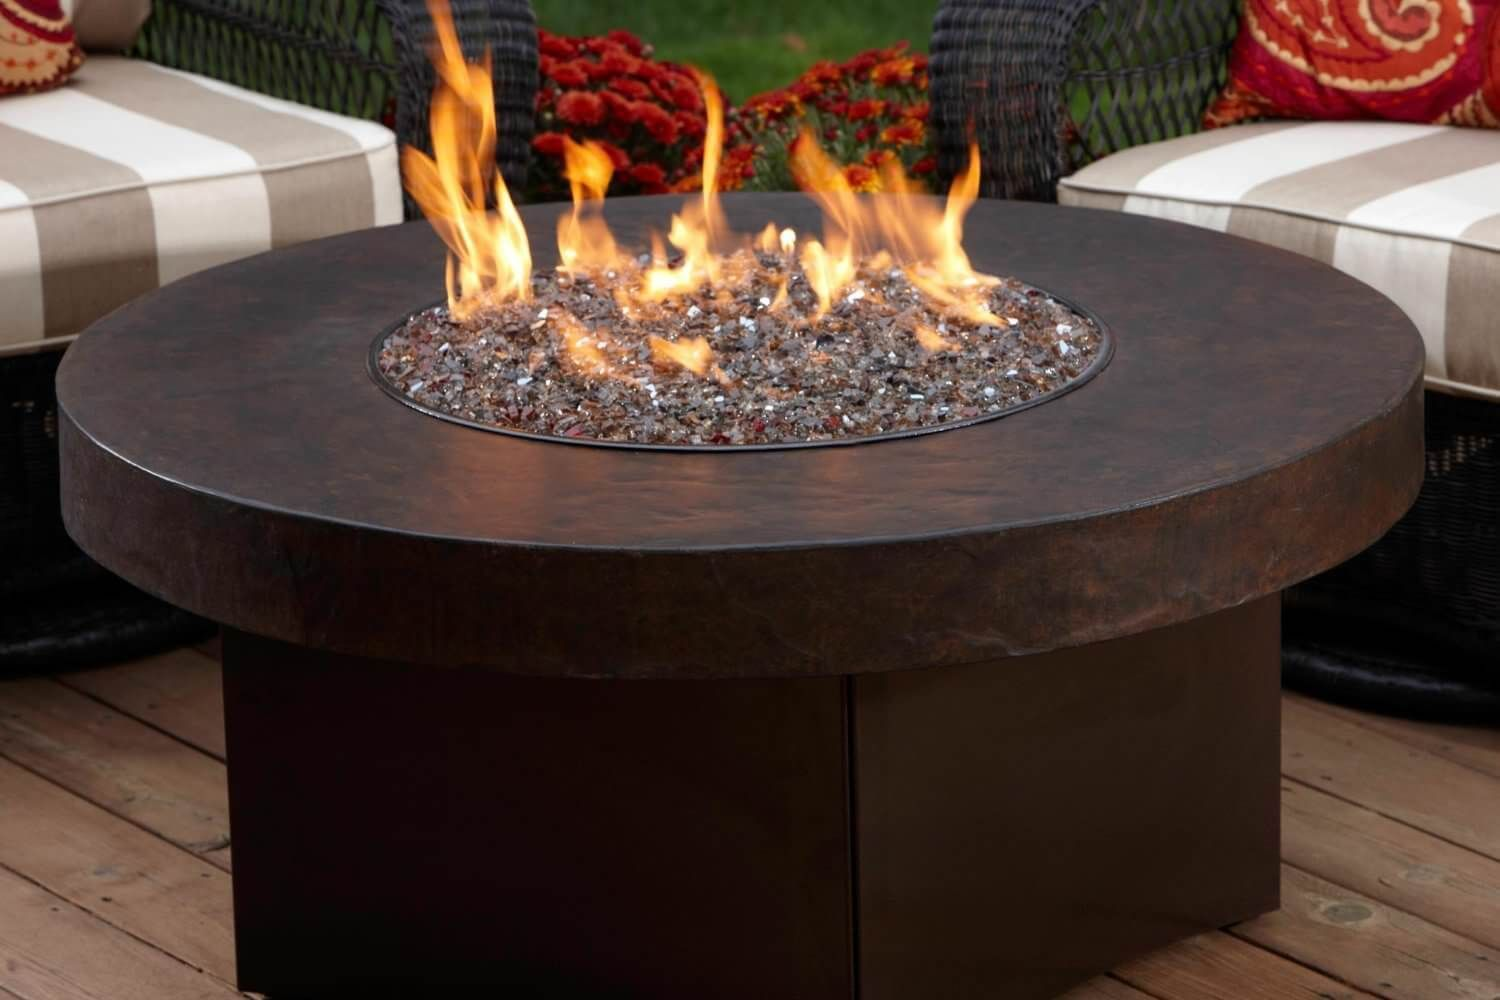 42 Backyard And Patio Fire Pit Ideas Gas Fire Pits Outdoor Gas Firepit Small Fire Pit